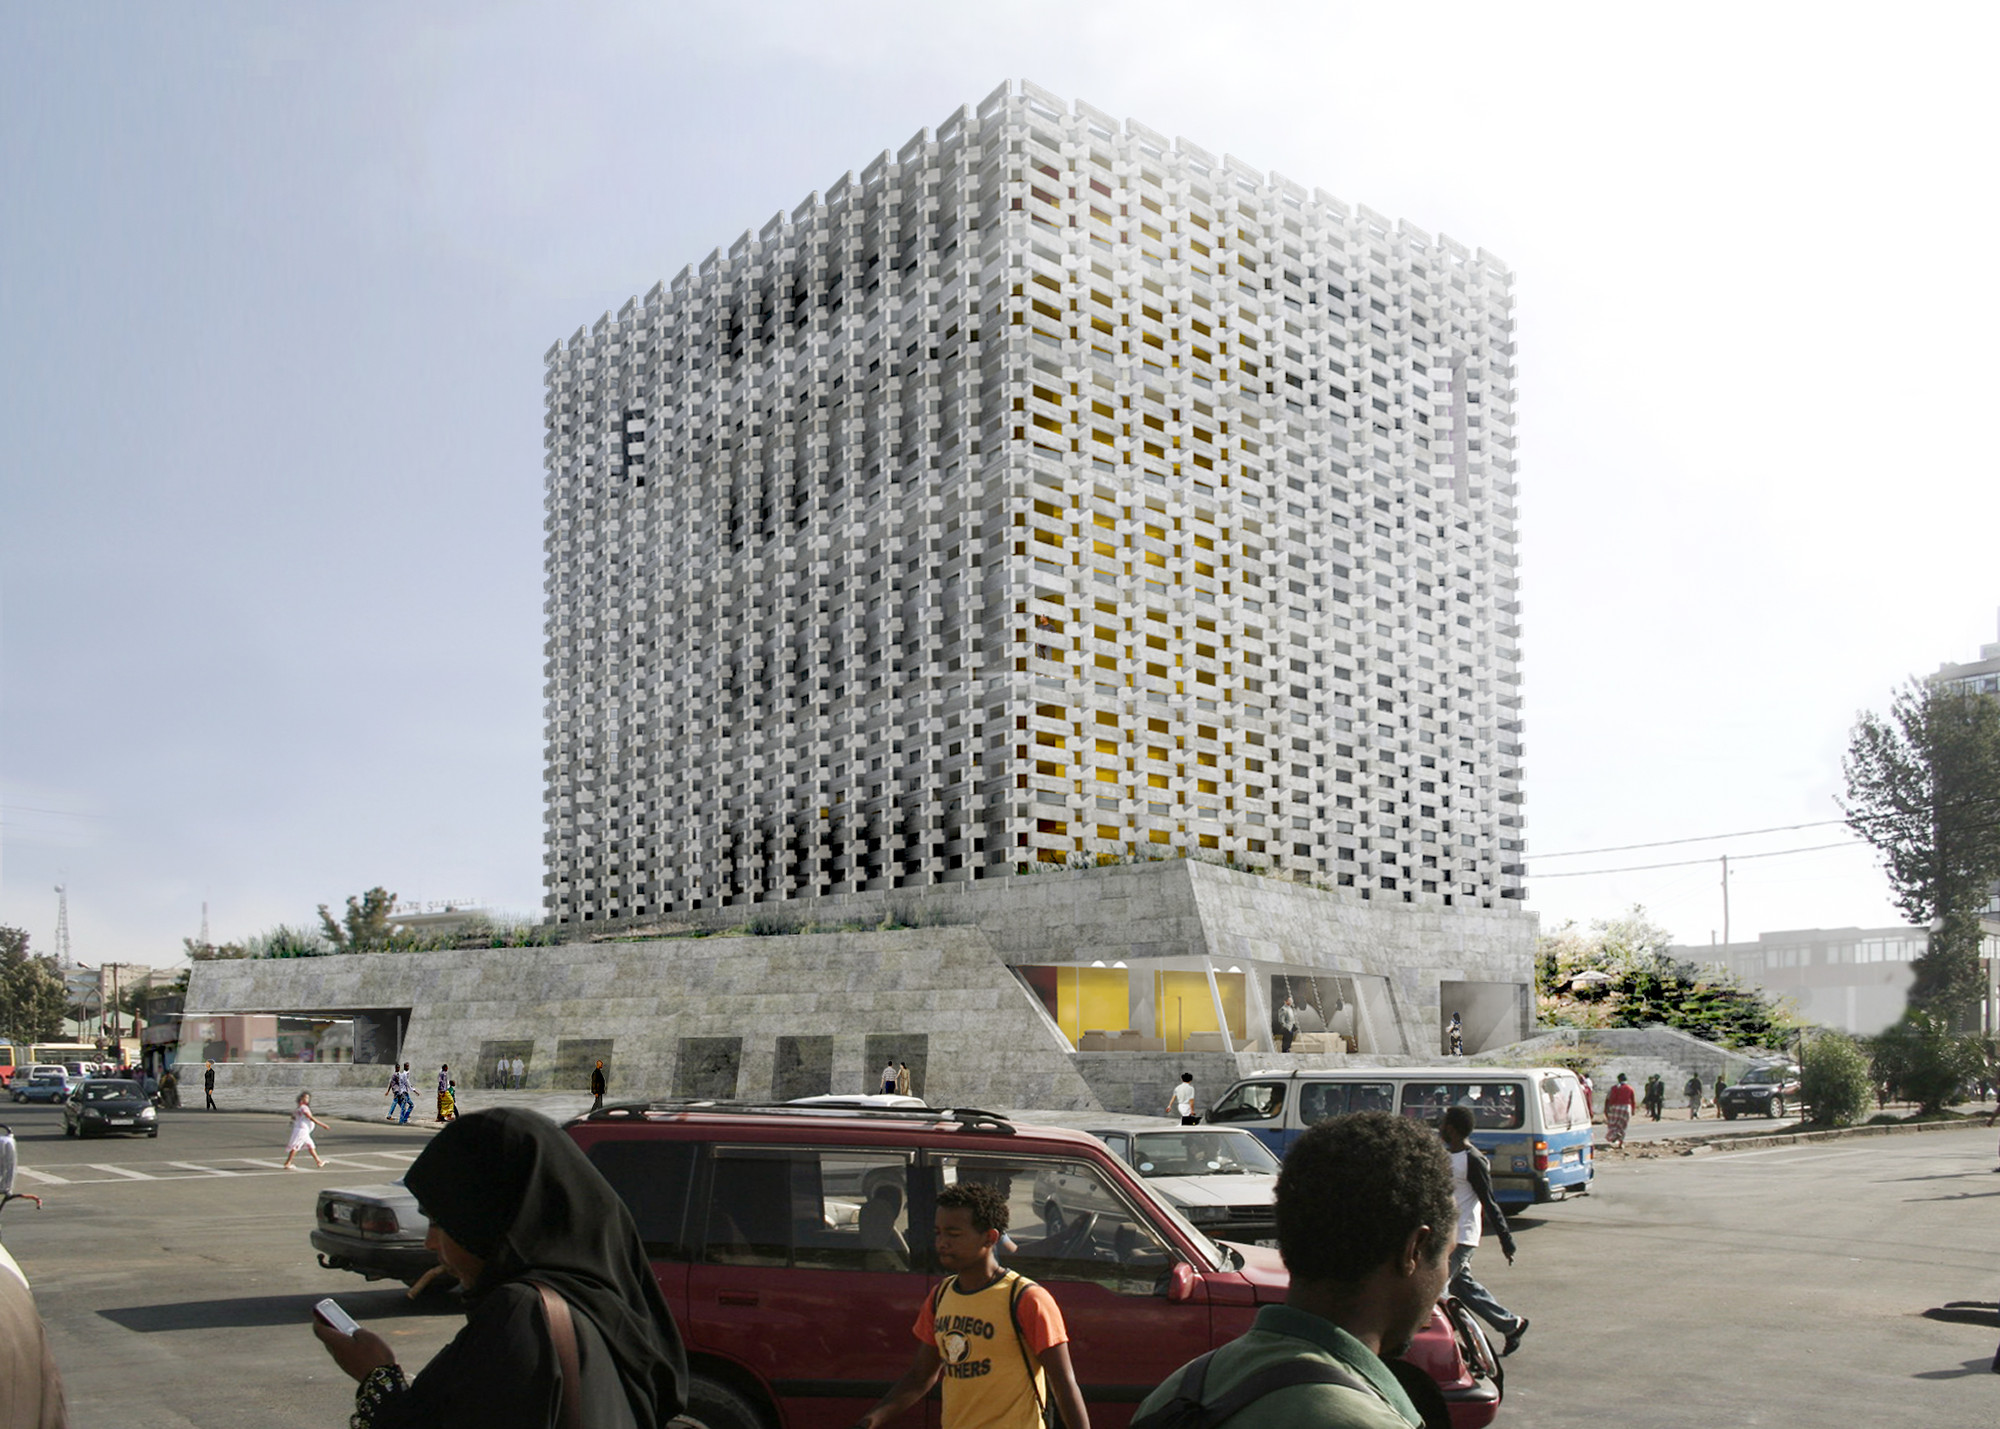 Courtesy of BC Architects, ABBA architects, and Adey Tadess